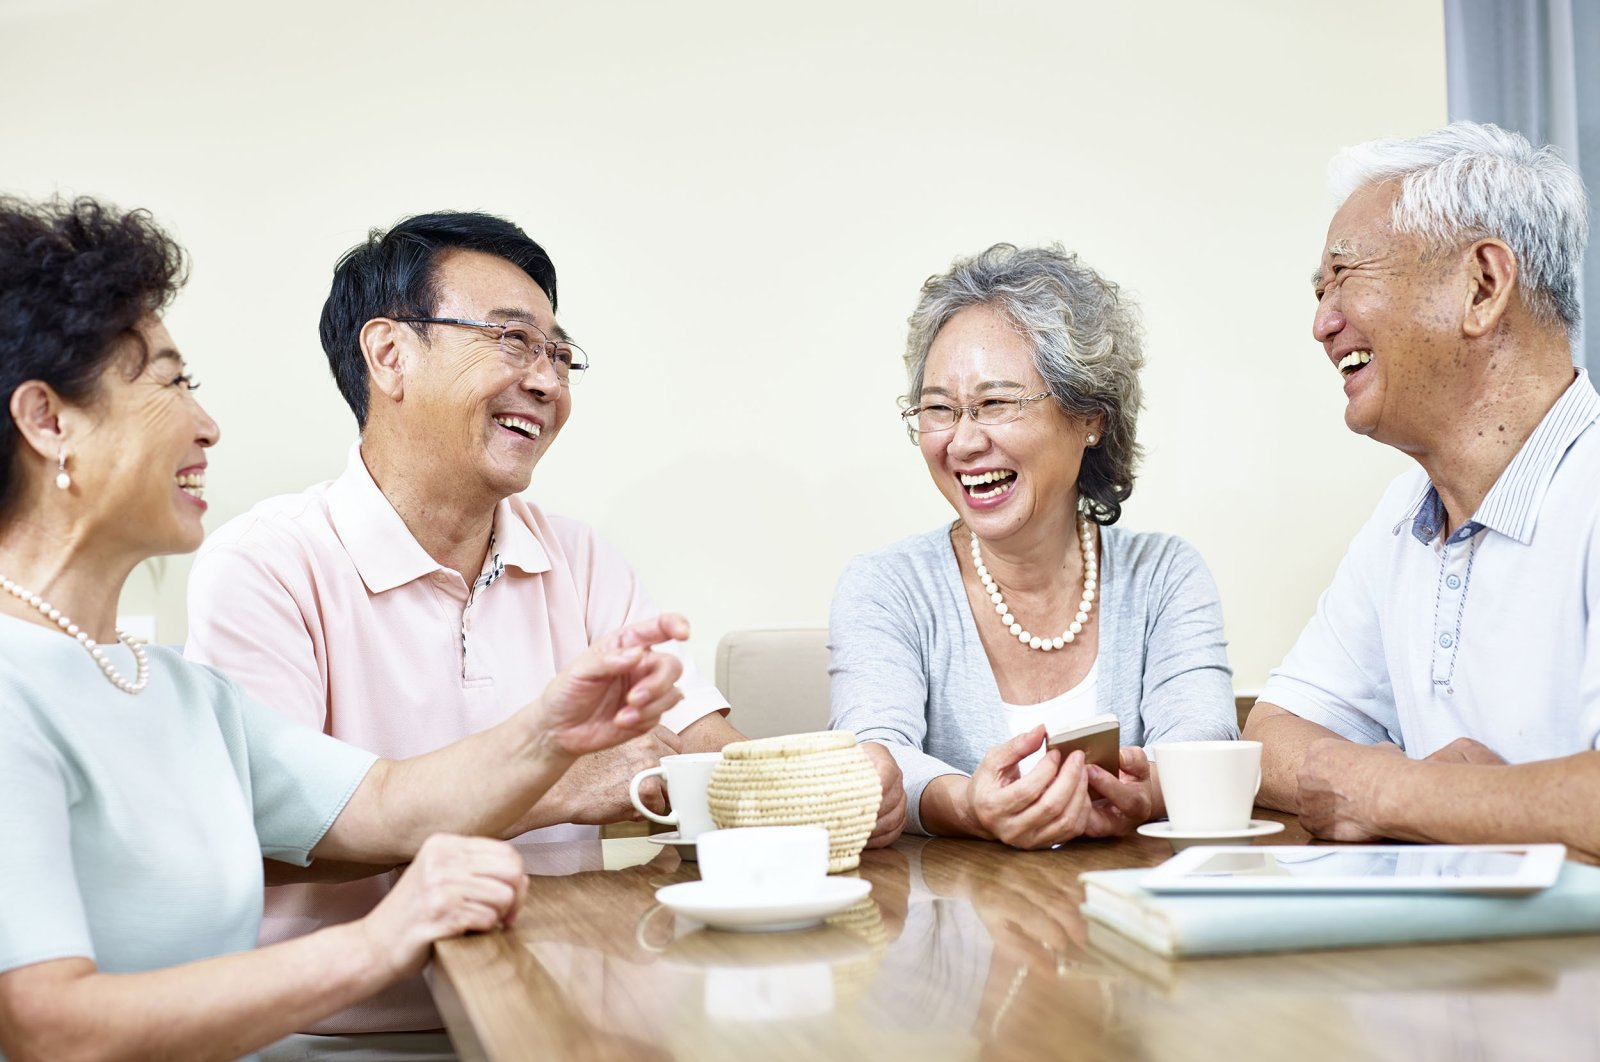 The elderly in East Asian economies are the healthiest in the world, living longer and healthier lives than their Western counterparts. (Shutterstock Photo)